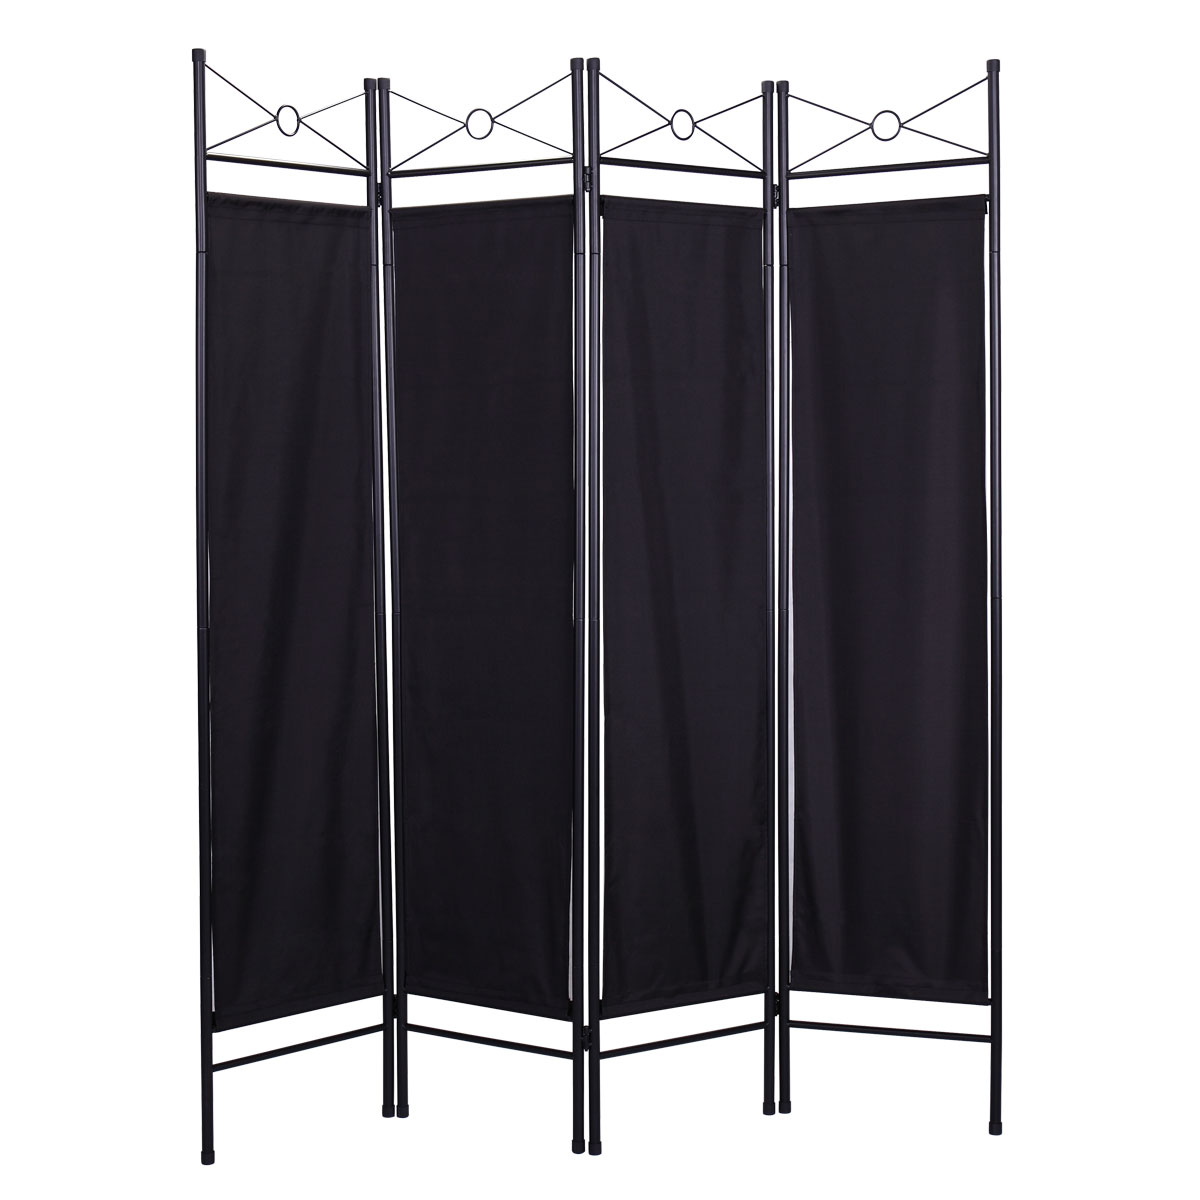 4-Panel Steel Room Divider Screen Black Fabric Folding Partition Home Office Privacy Screen